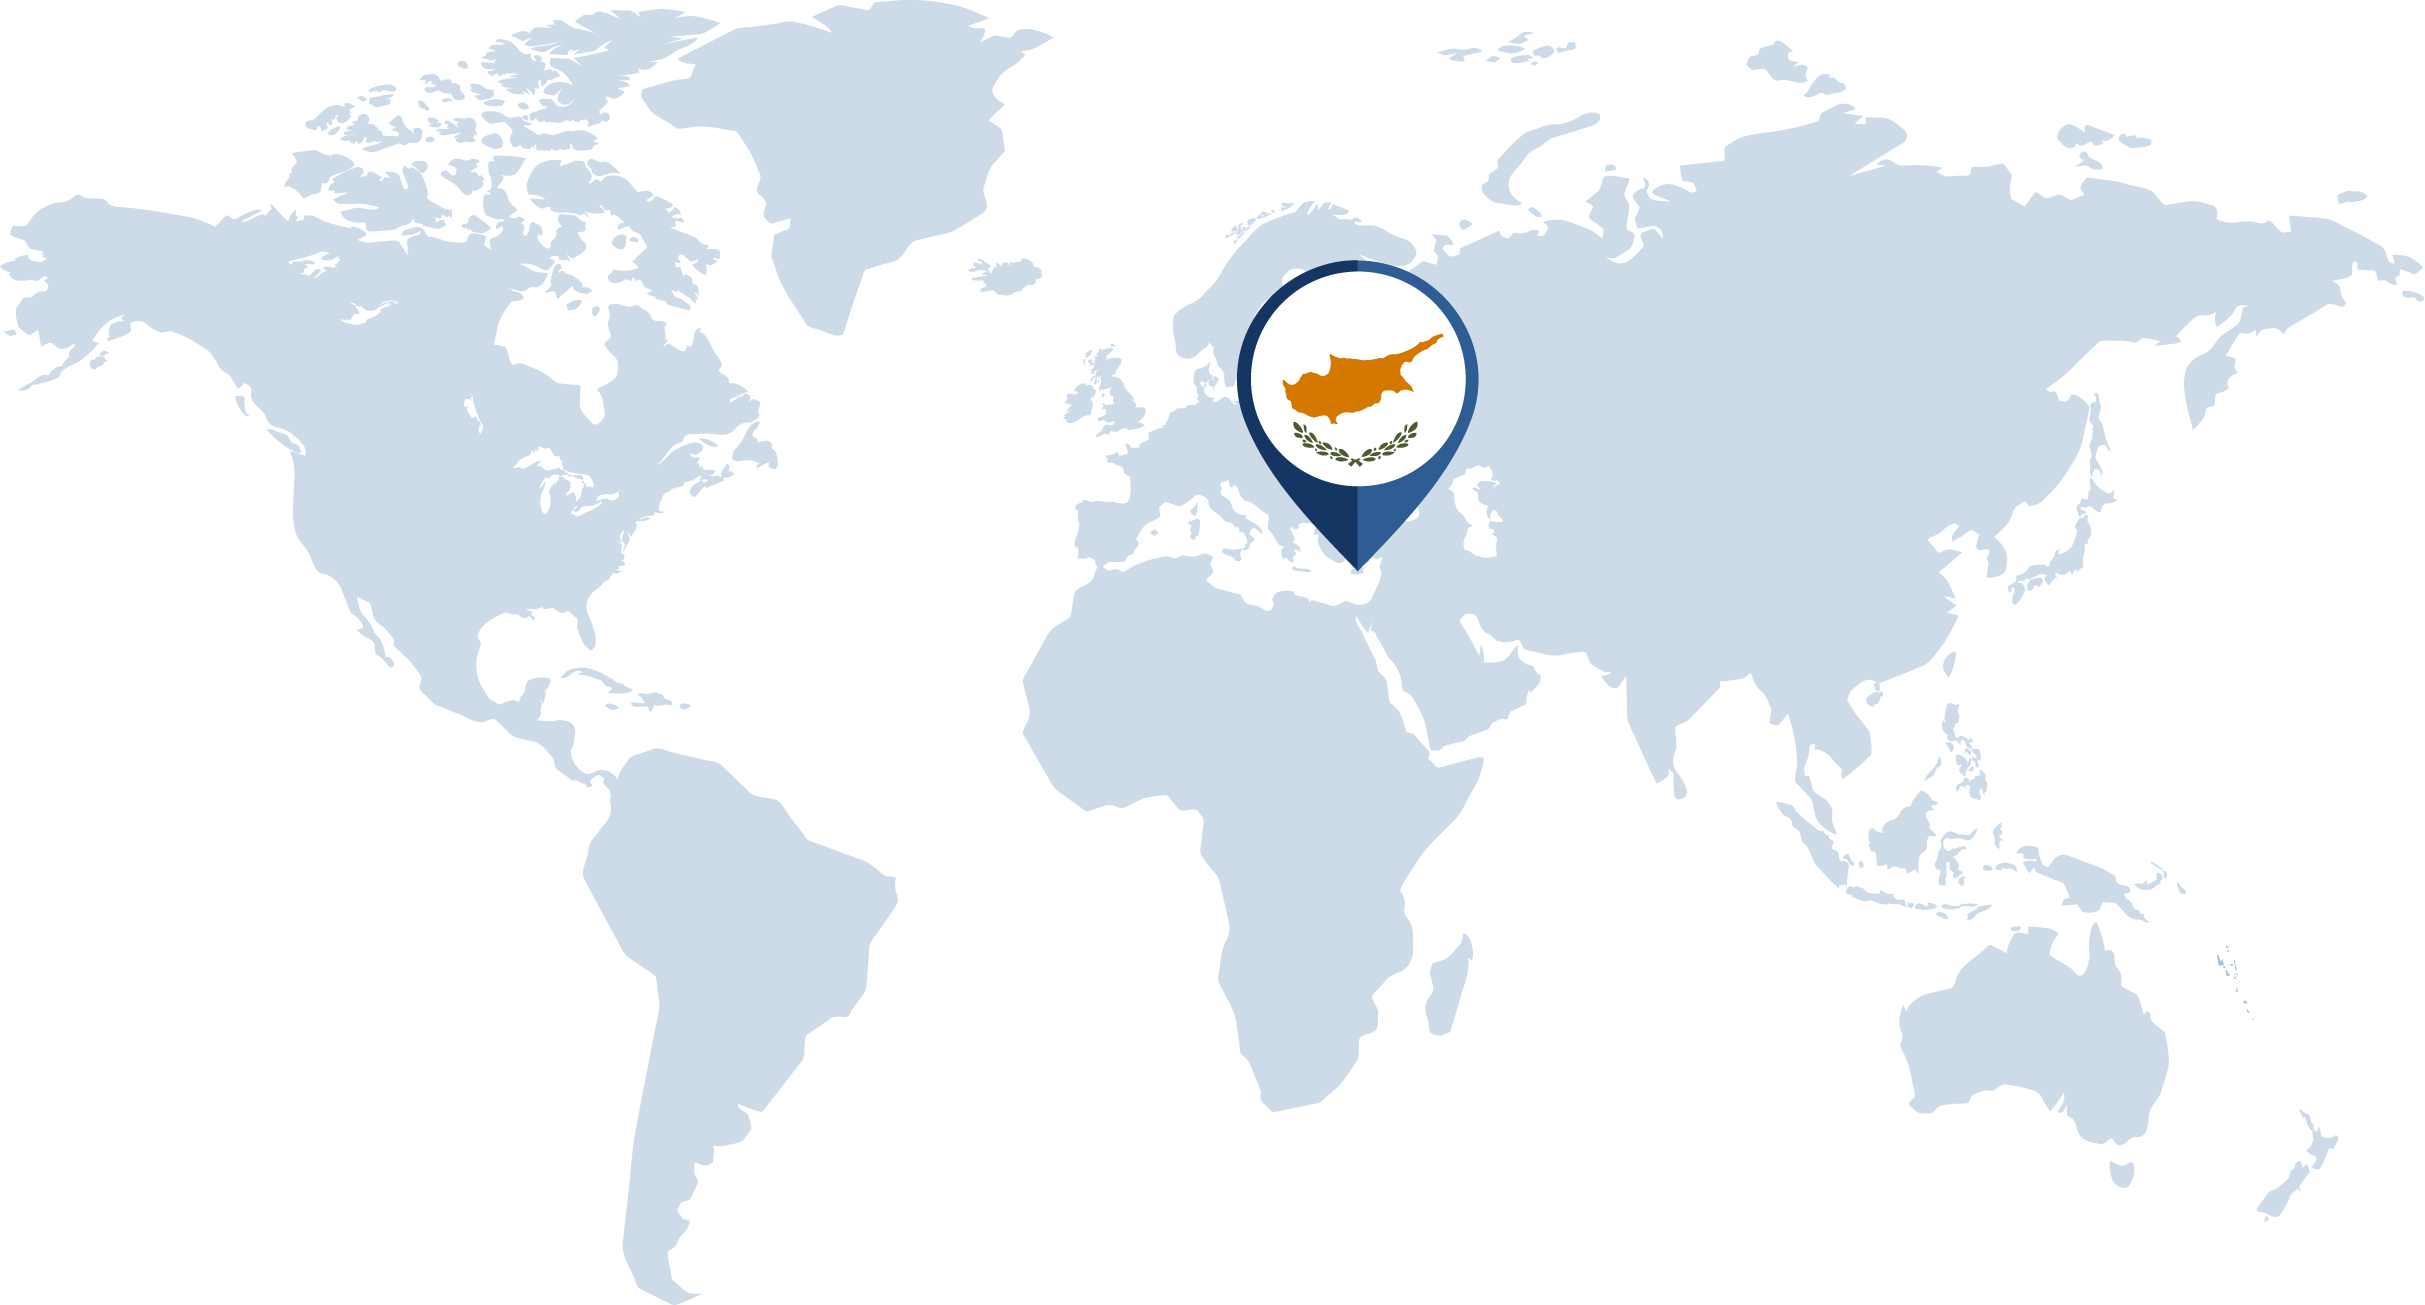 https://bluemina.com/wp-content/uploads/2020/02/Cyprus-map-and-flag-2.png